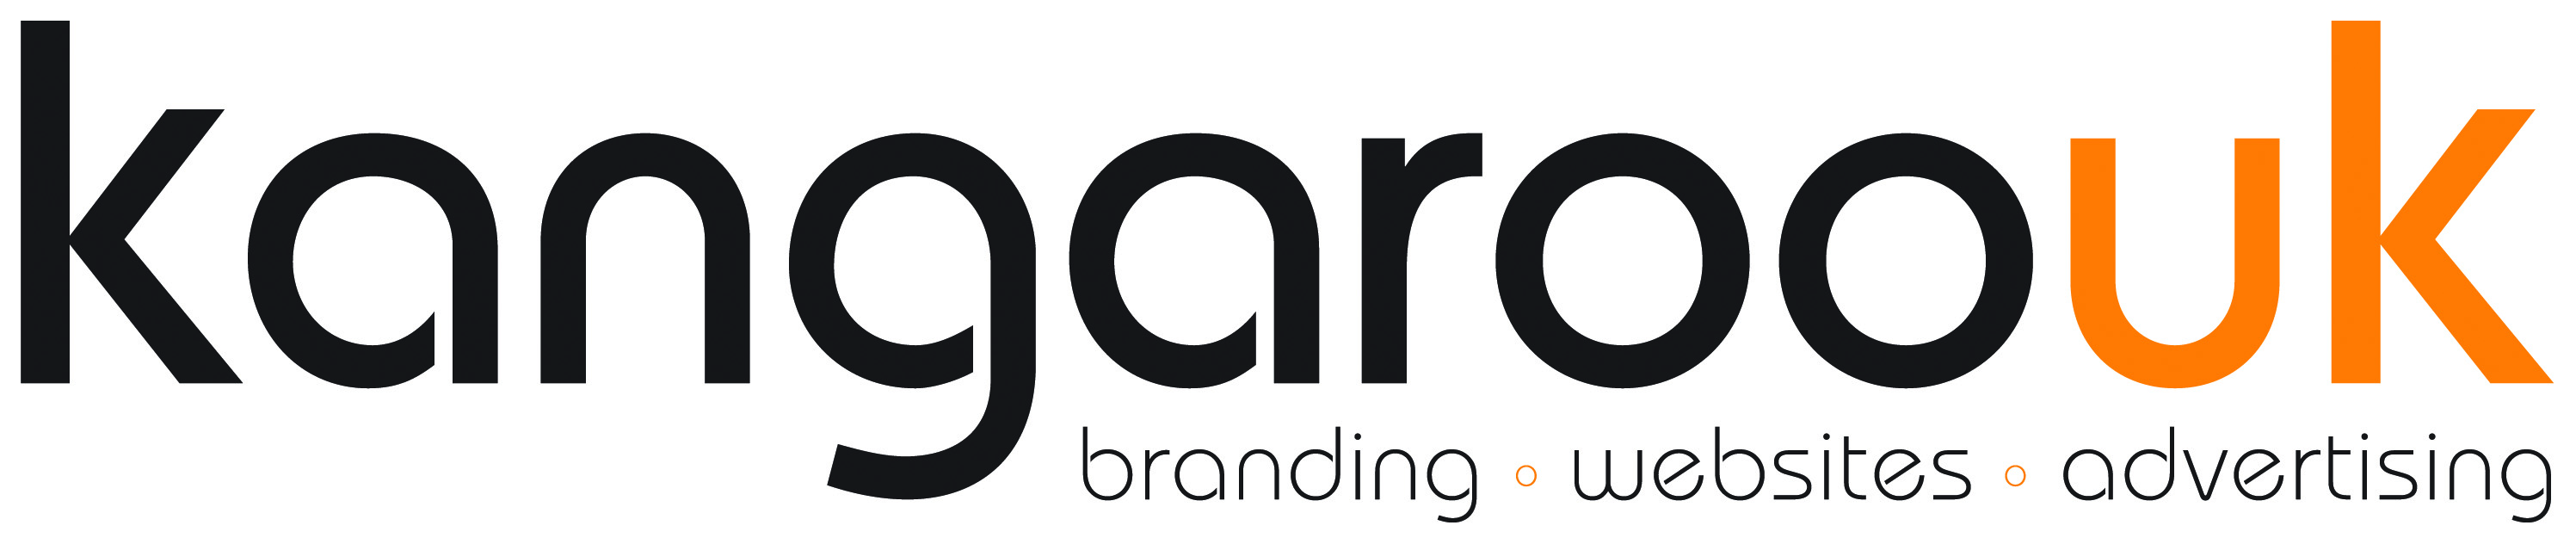 Read Kangaroo Marketing & Design Ltd Reviews